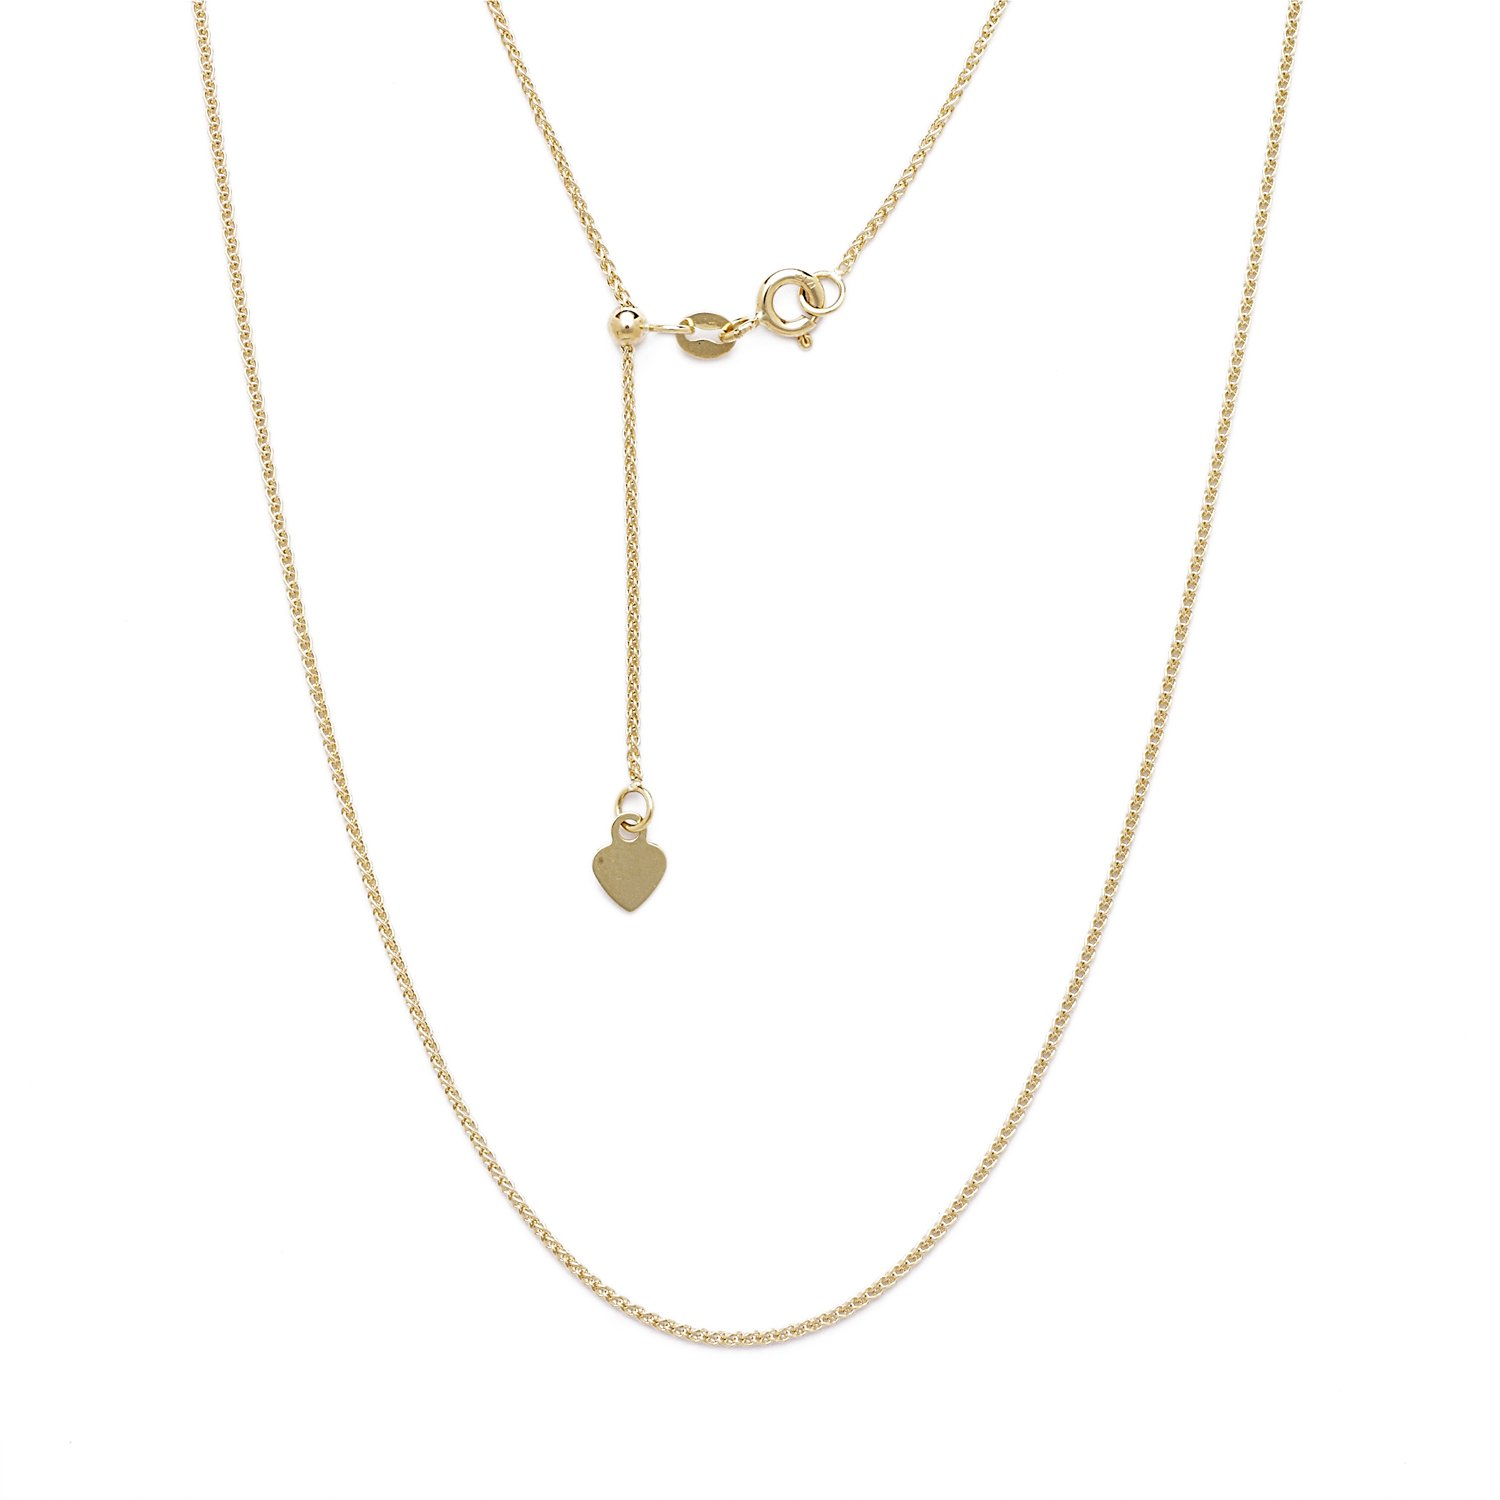 10k Yellow Gold Adjustable Solid Rope Chain Necklace w/ Spring Ring Clasp and Small Heart Charm 1.5mm 24''